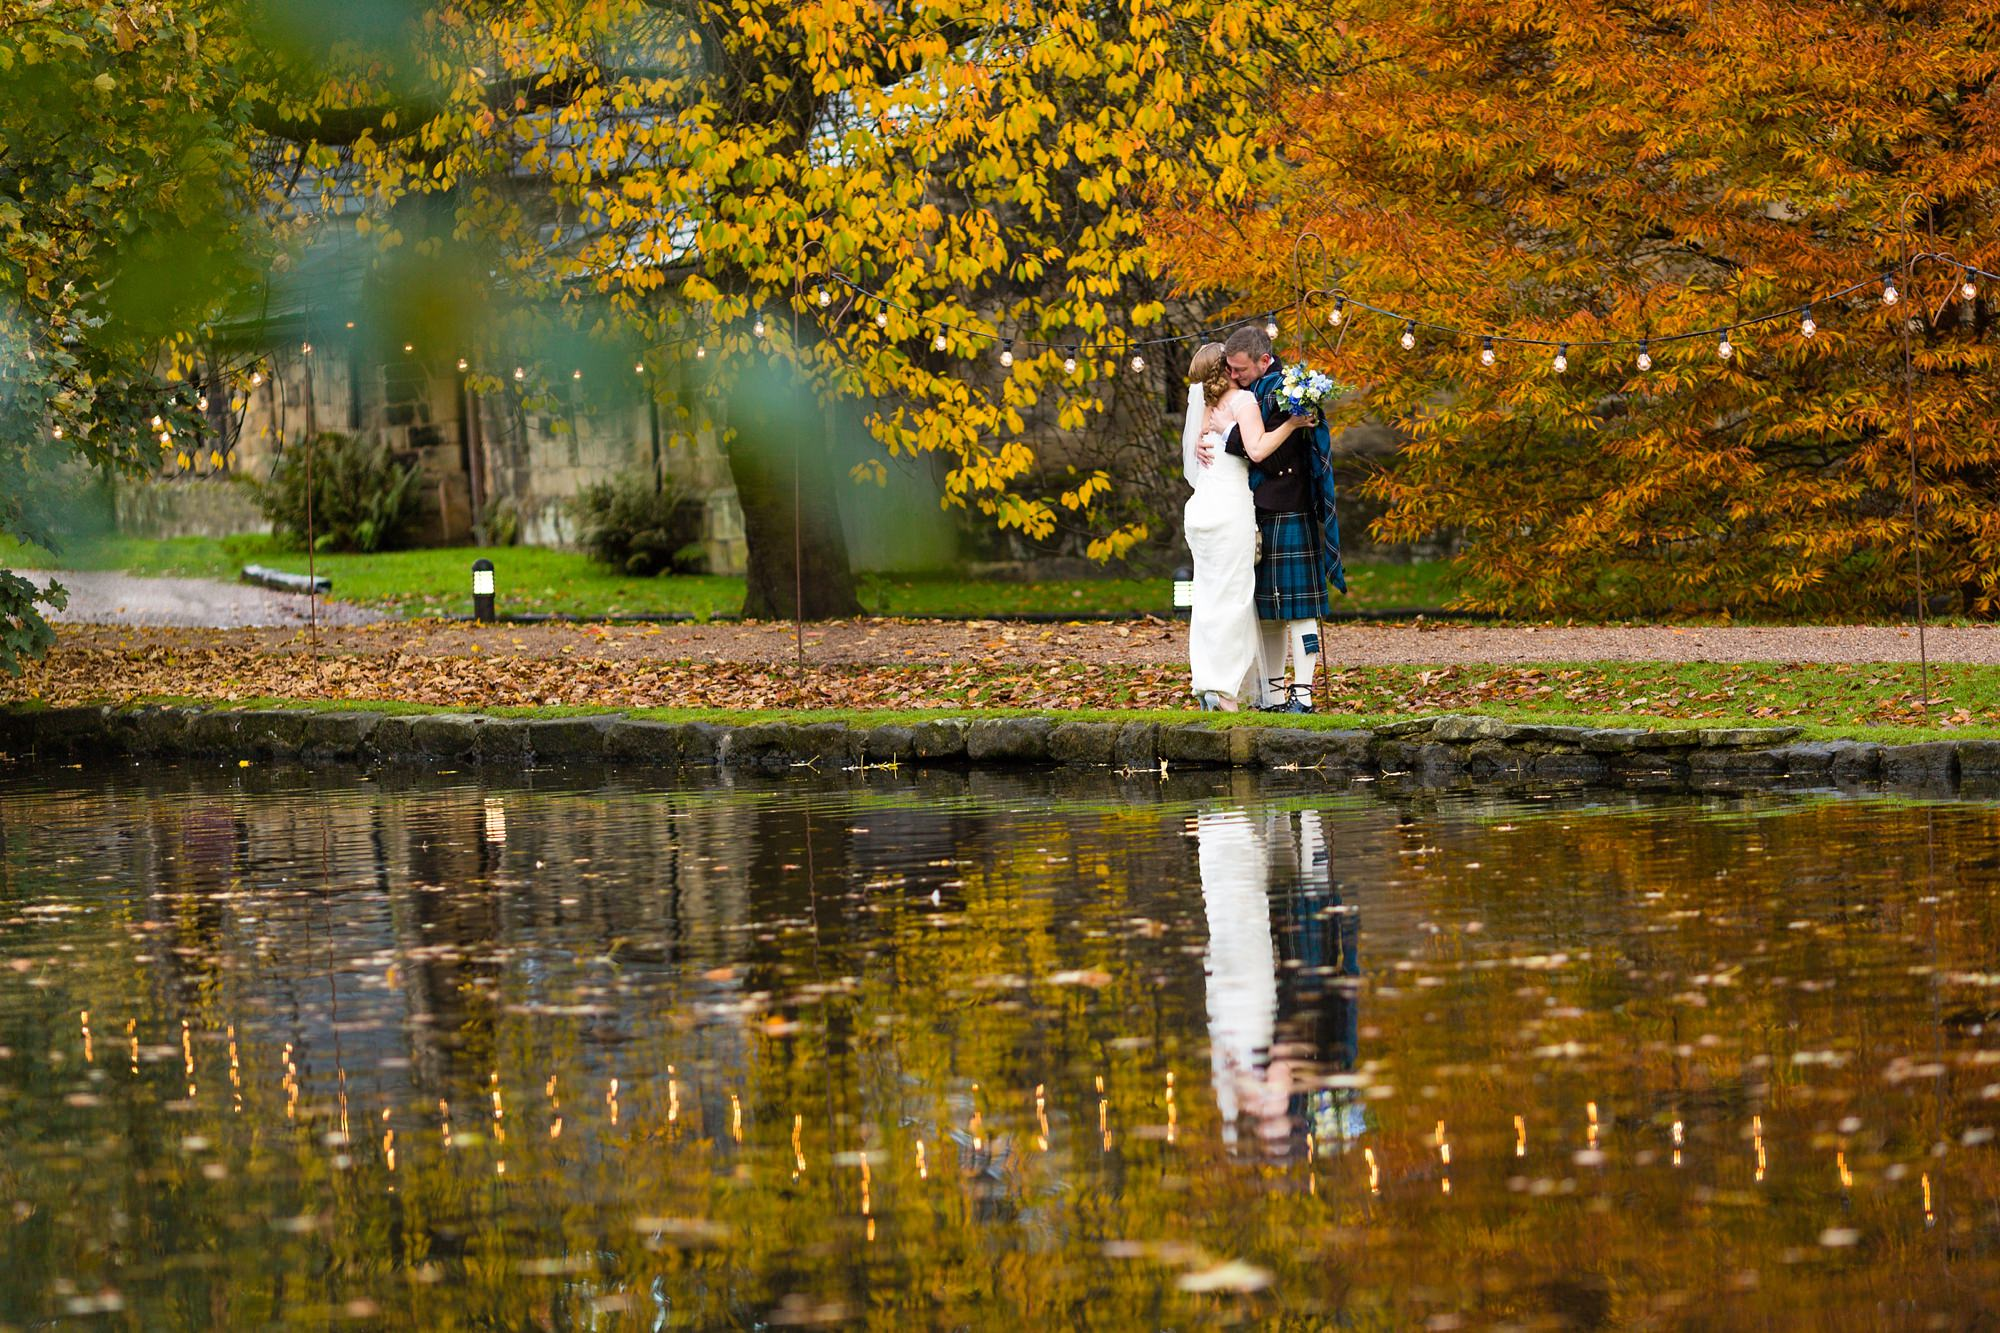 Bride and groom wearing kilt and tartan kiss in autumn colours by lake at East Riddlesden Hall Wedding